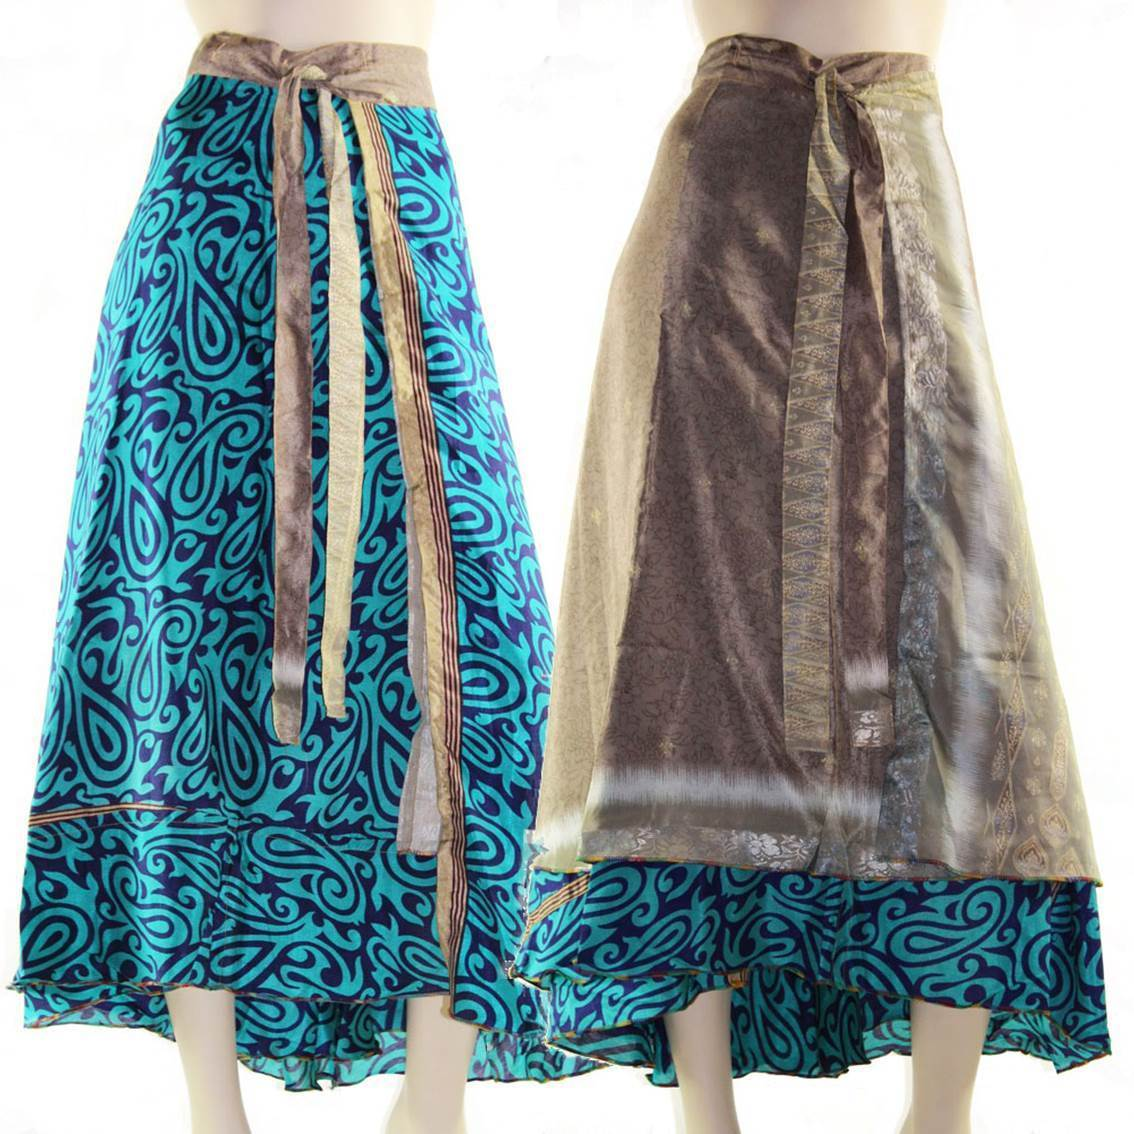 Silk Wrap Skirt Size 8 – 16 Reversible Maxi Long Dress Top so many ways to wear